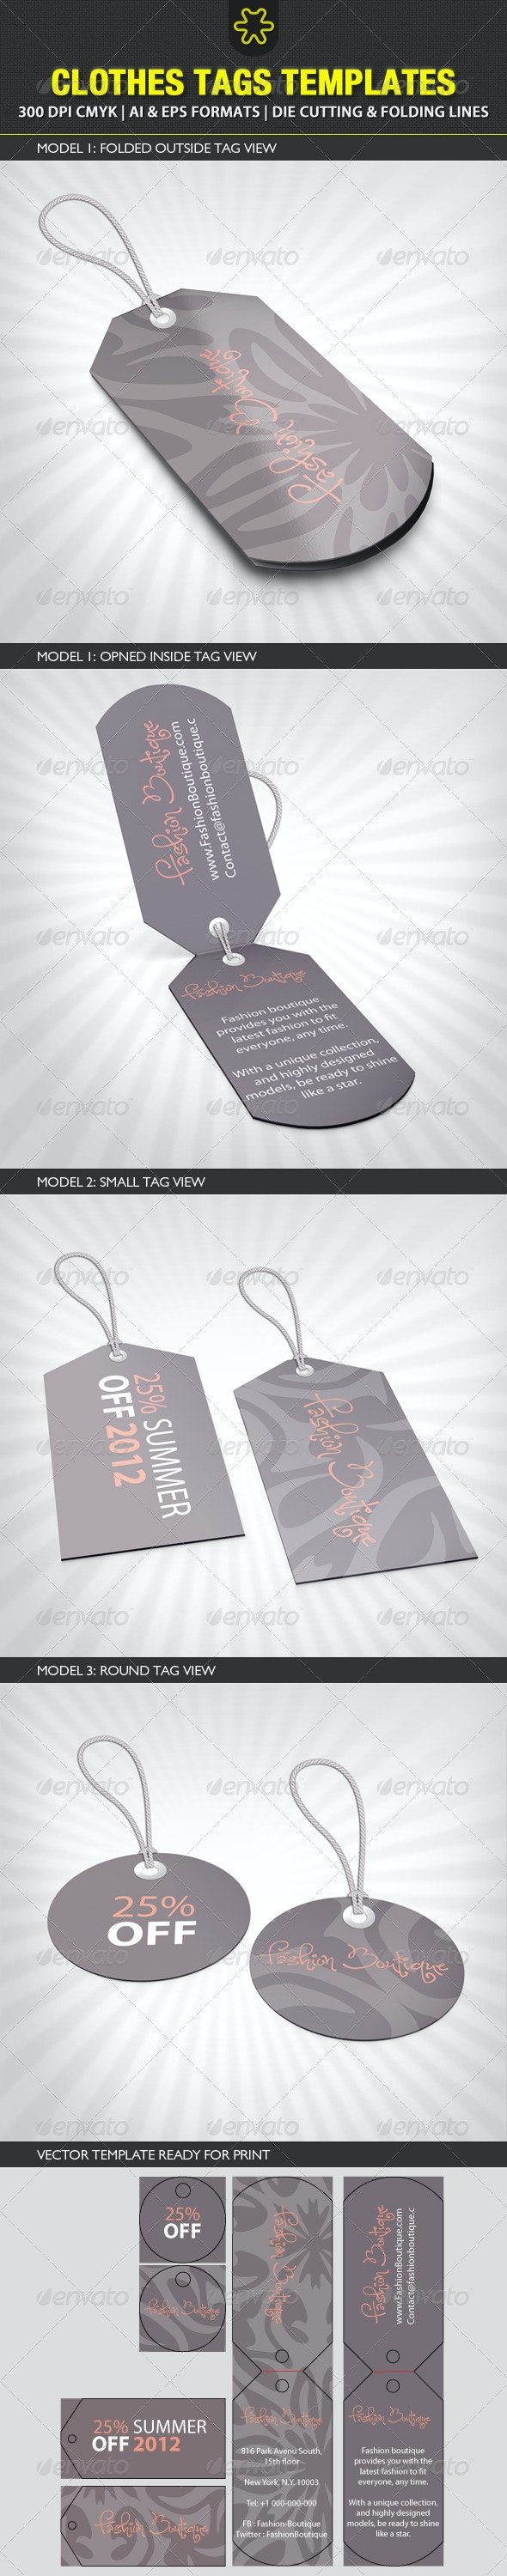 Clothes Tags Templates - Packaging Print Templates